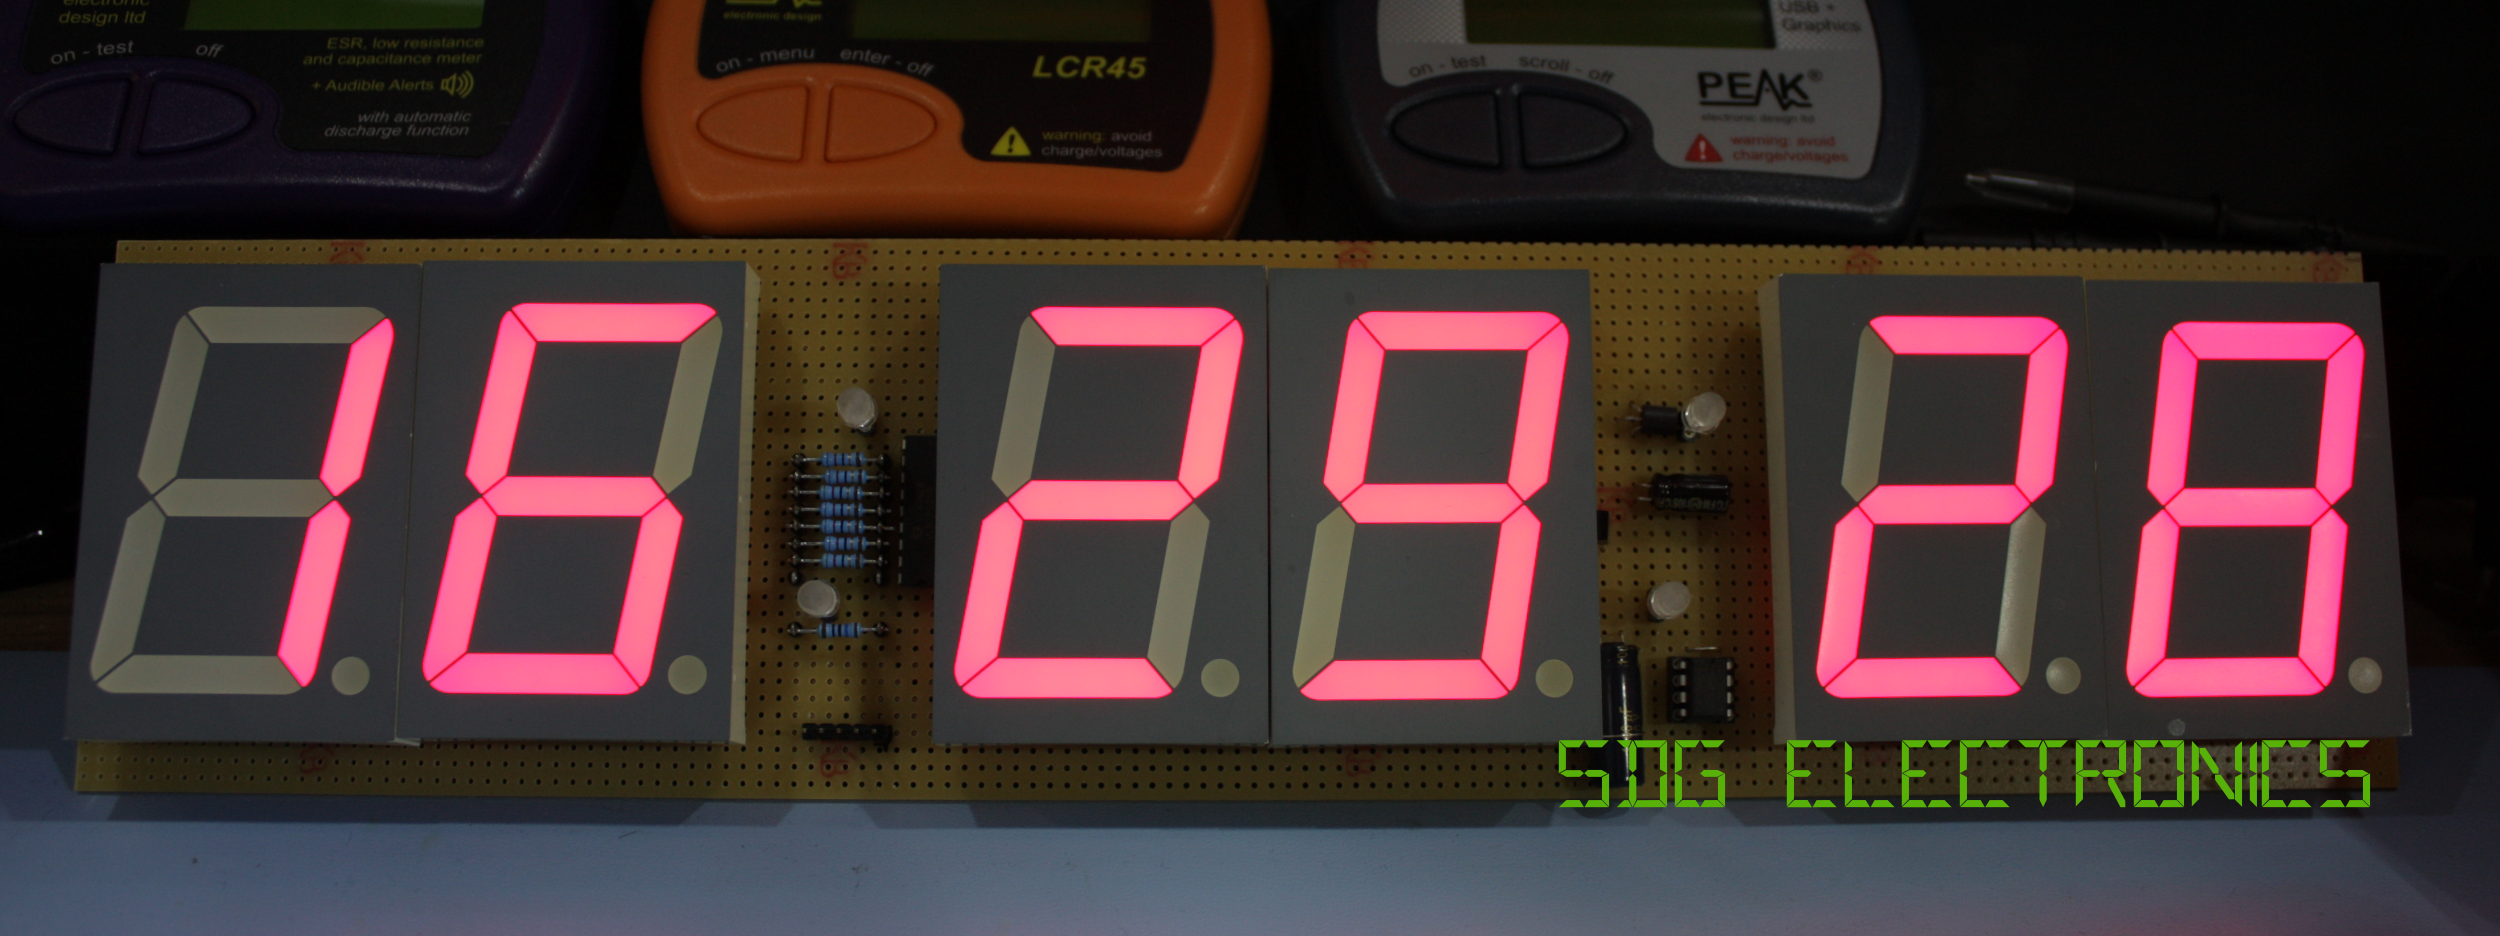 6 Digit Led Clock Sdg Electronics 7 Segment Display Circuit Diagram